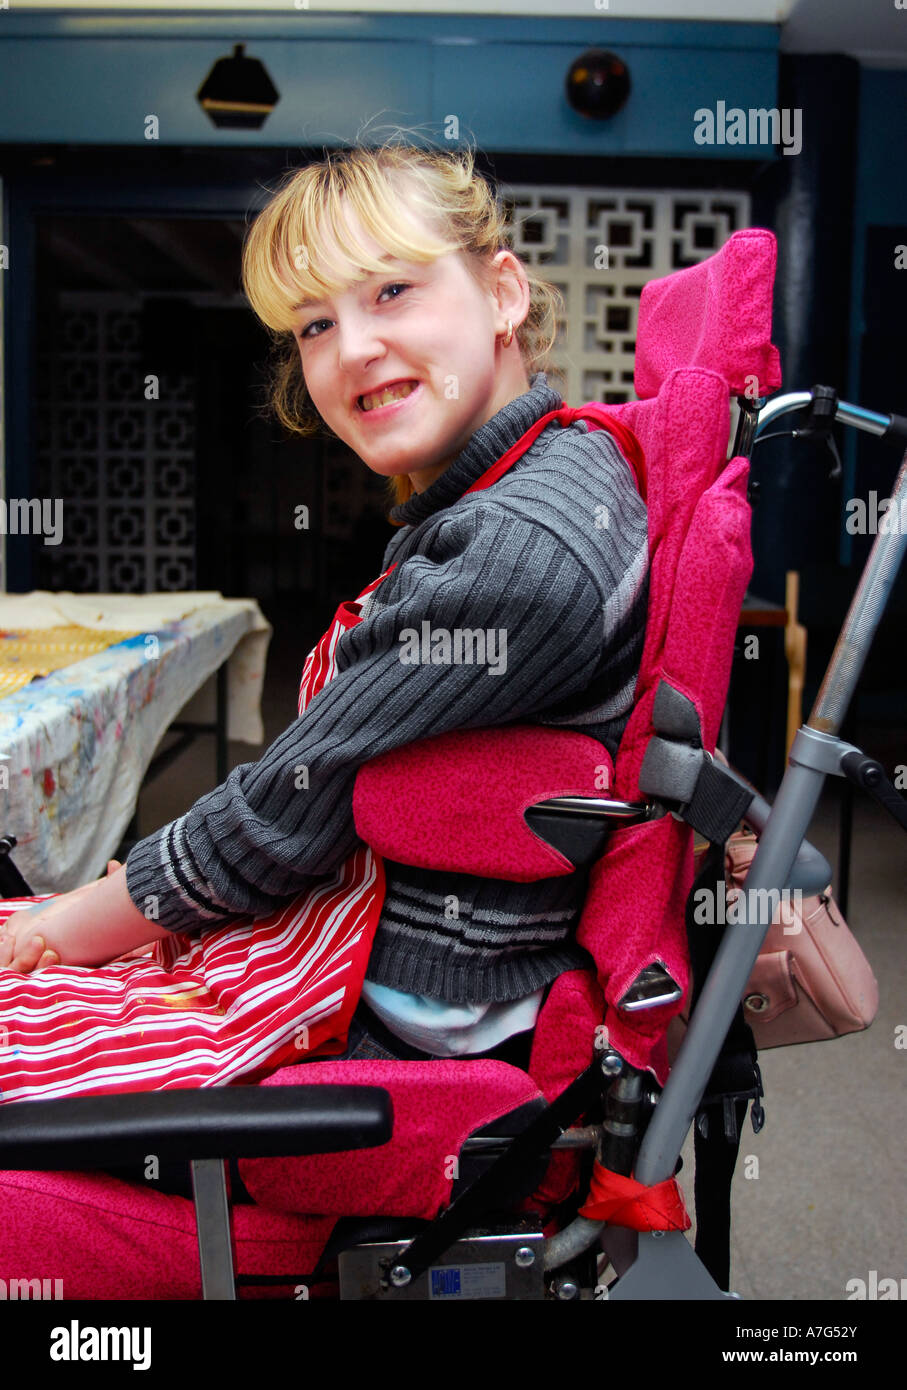 You Tub Y Girls Disabled Girl In Wheelchair London Uk